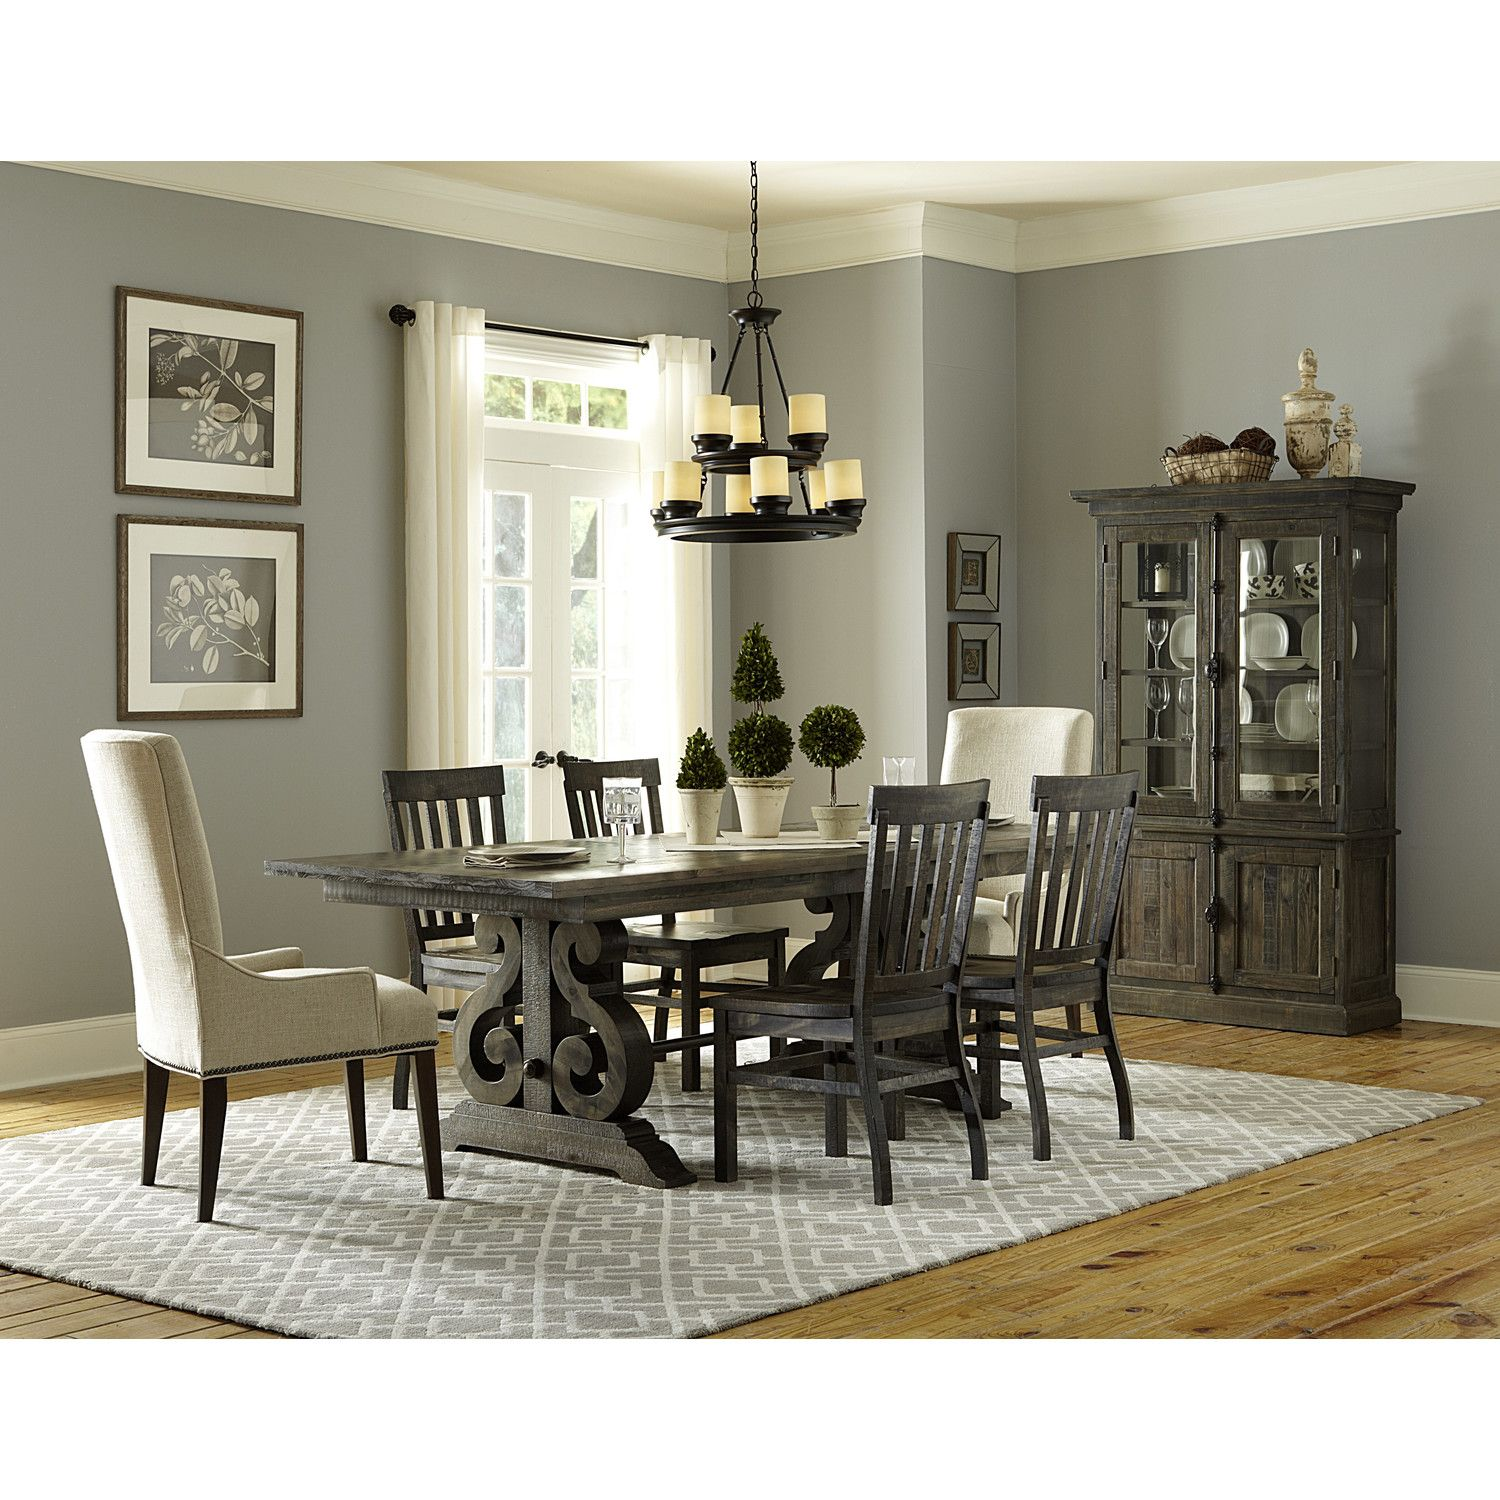 Magnussen Furniture Bellamy Dining Table New Dining Room Table